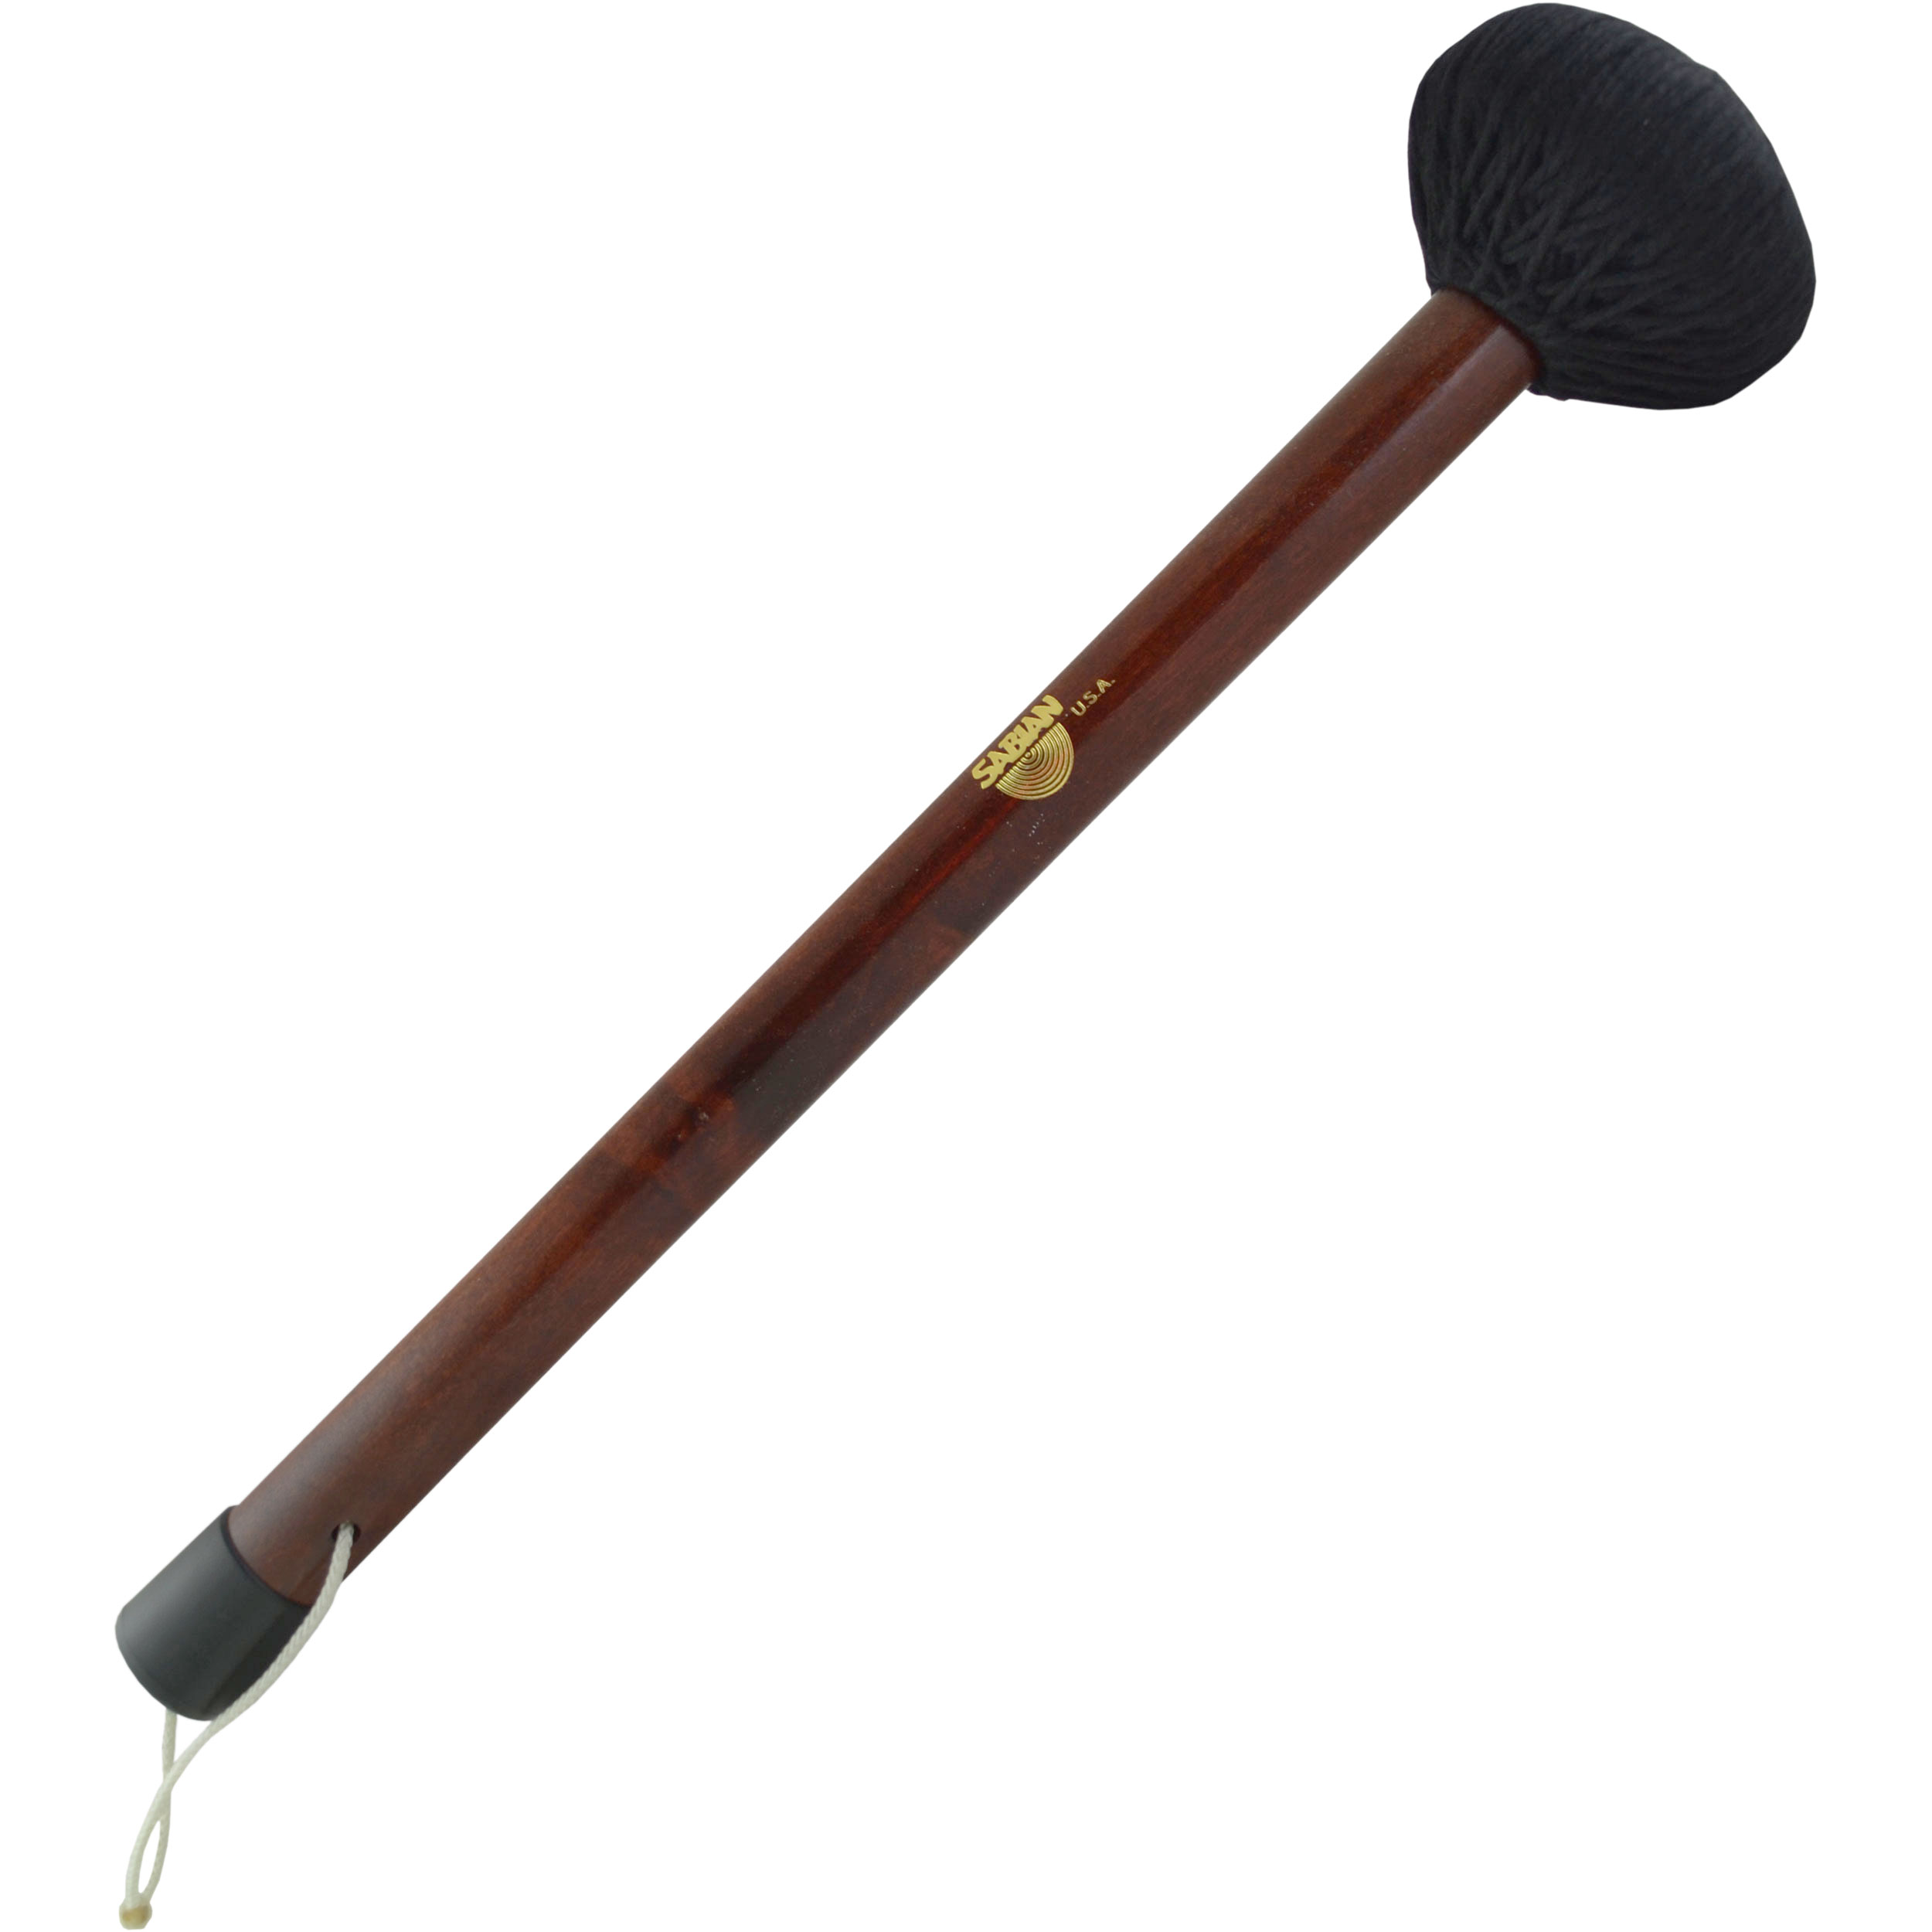 Sabian Small Gong Mallet